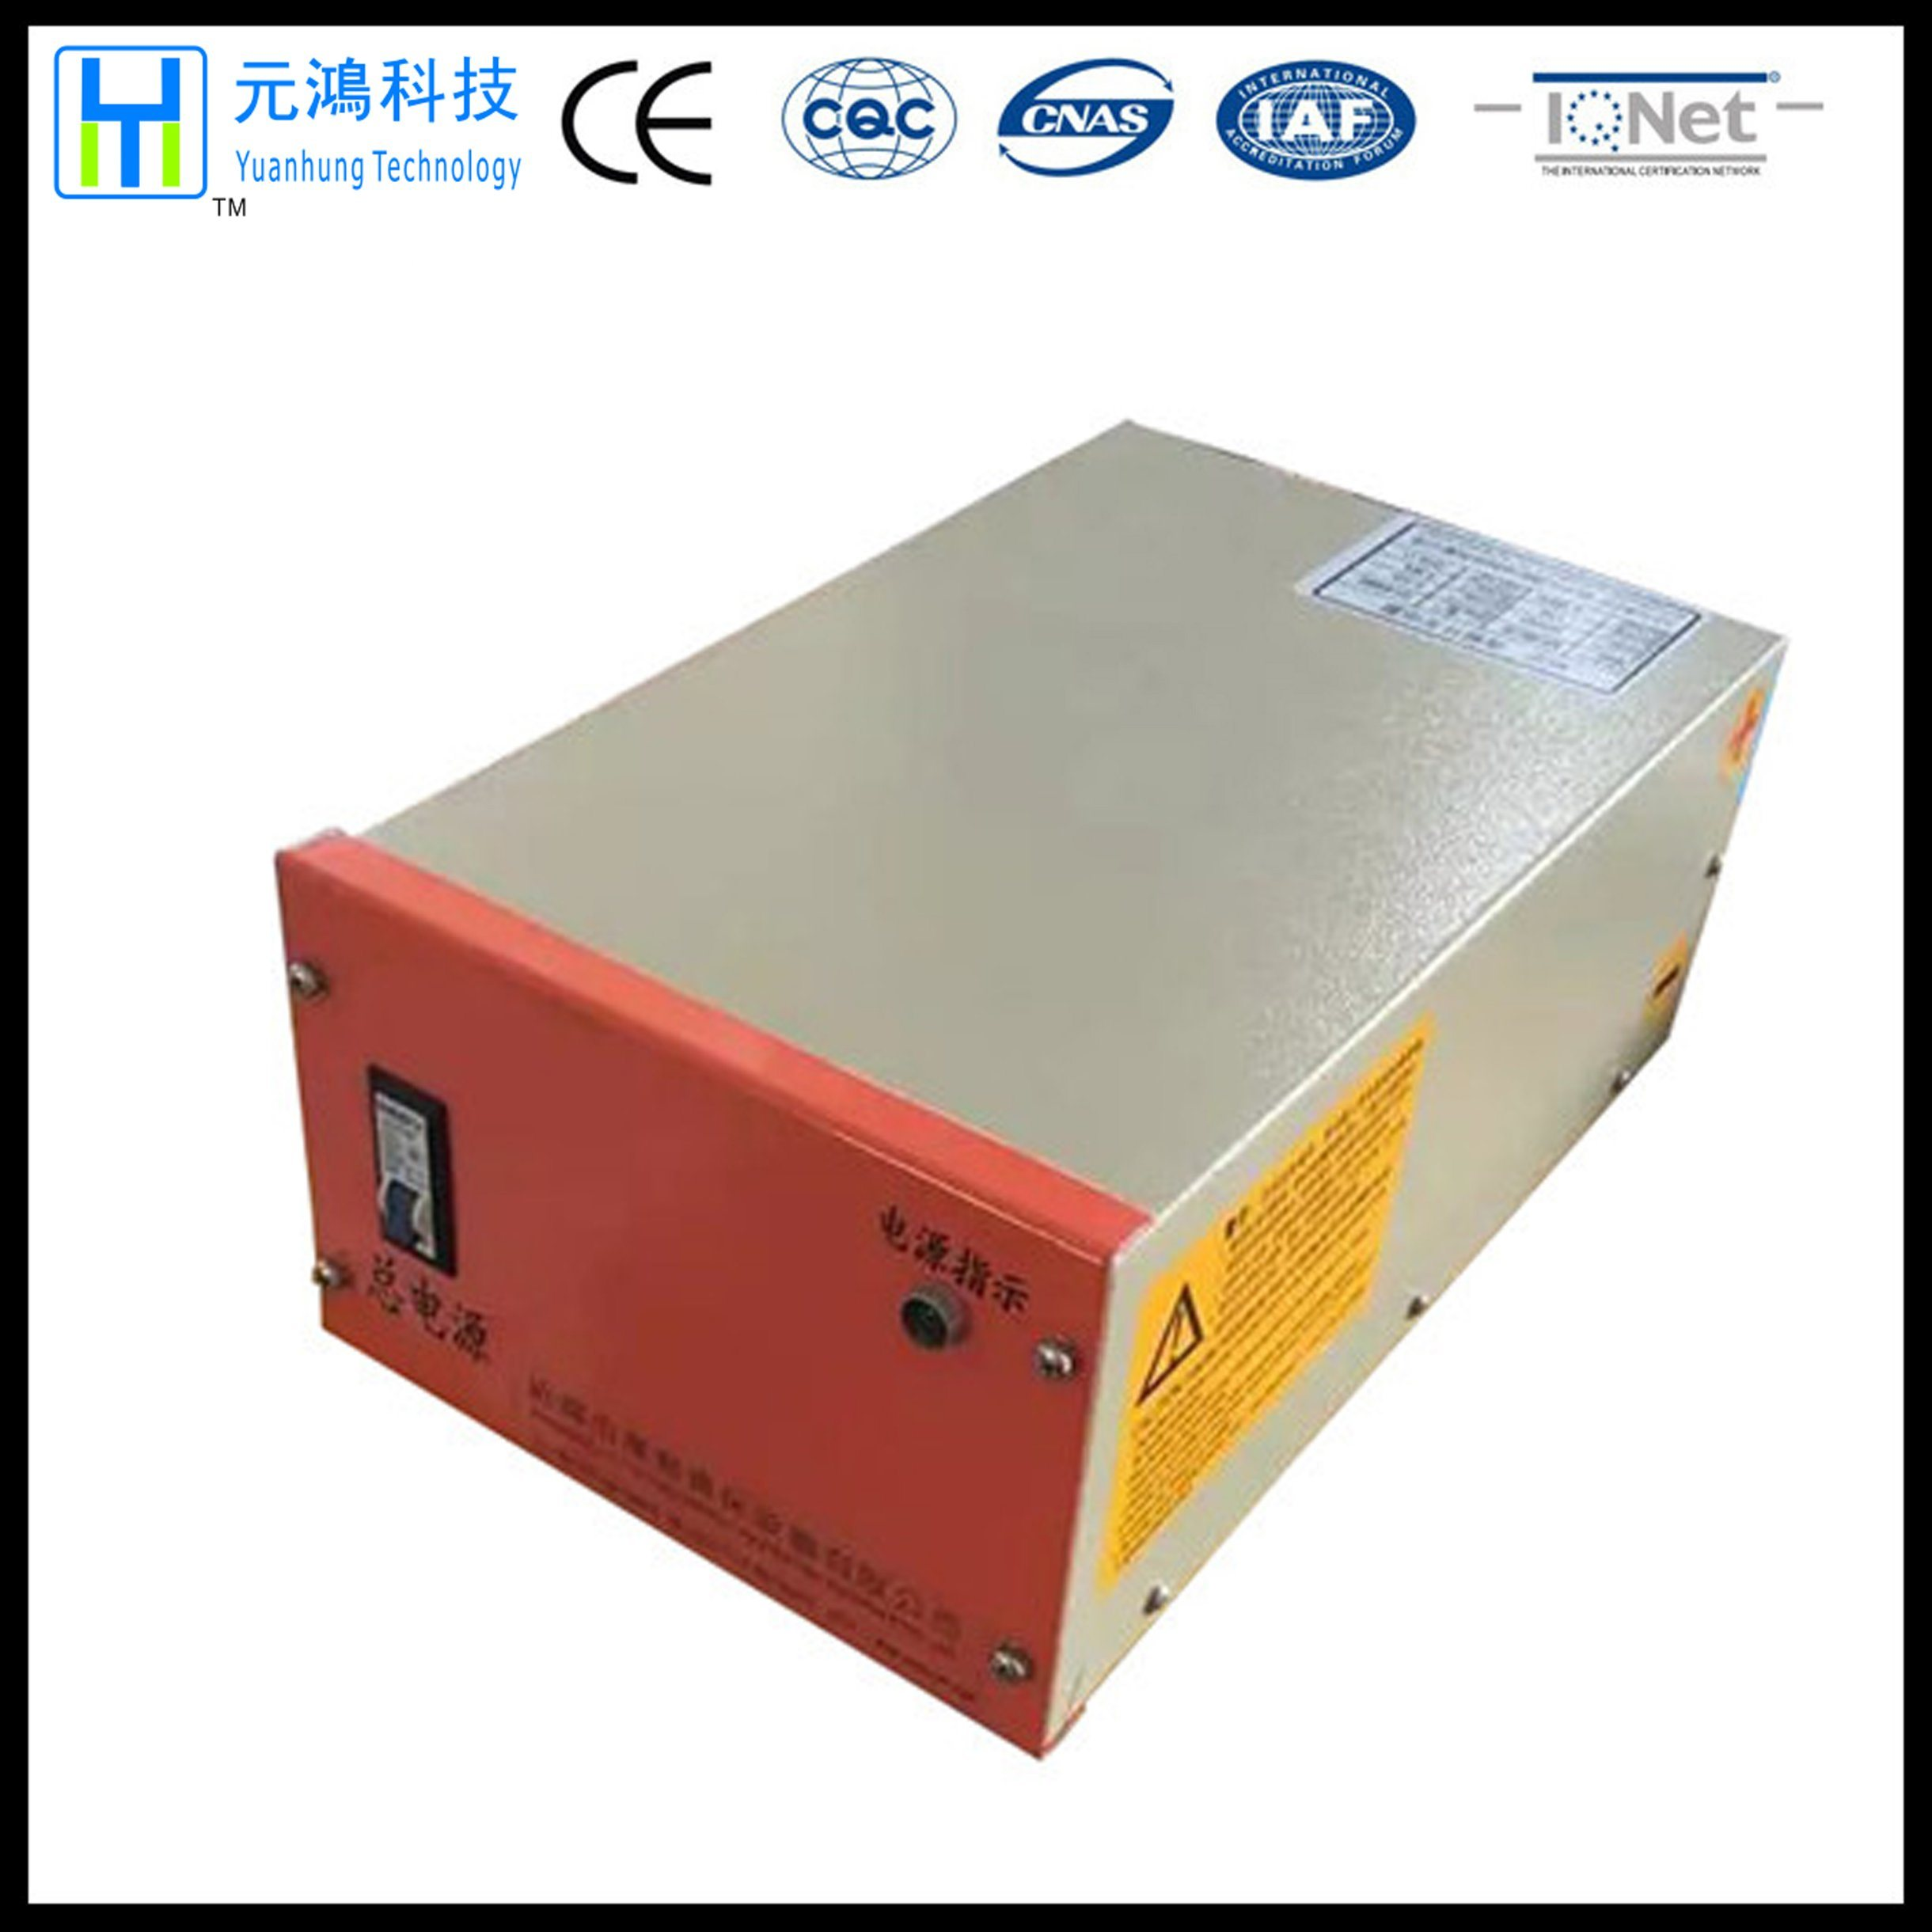 12V 30A Pulse Electroplating Plating Power Supply Rectifier, with Remote Box